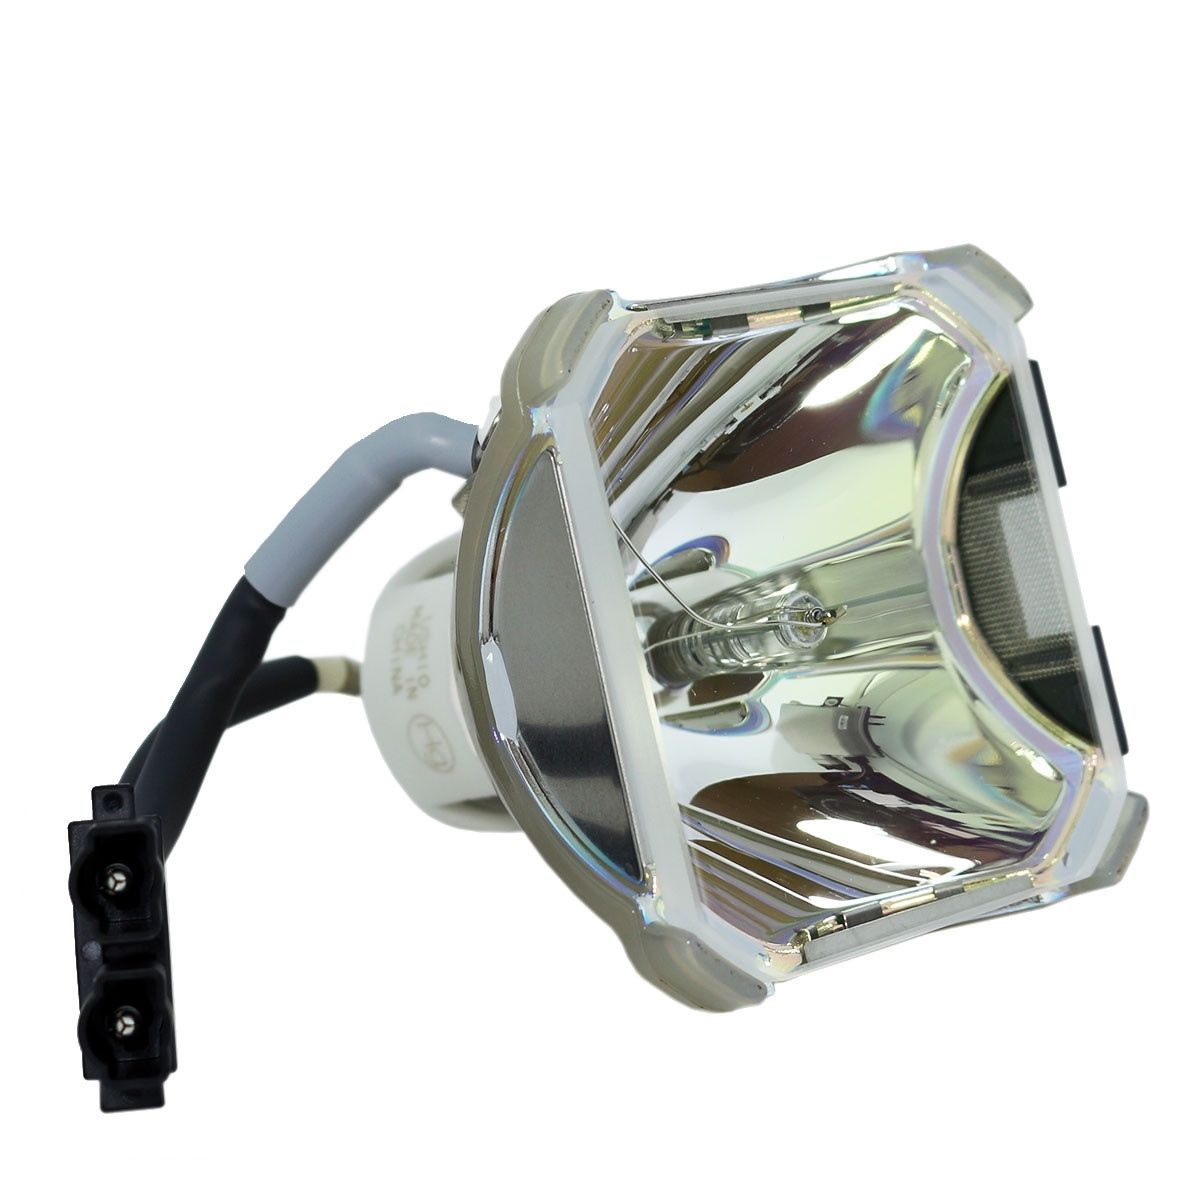 Compatible Bare Bulb EP8765LK 78-6969-9547-7 for 3M MP8765 / X65 Projector Lamp Bulb without housing